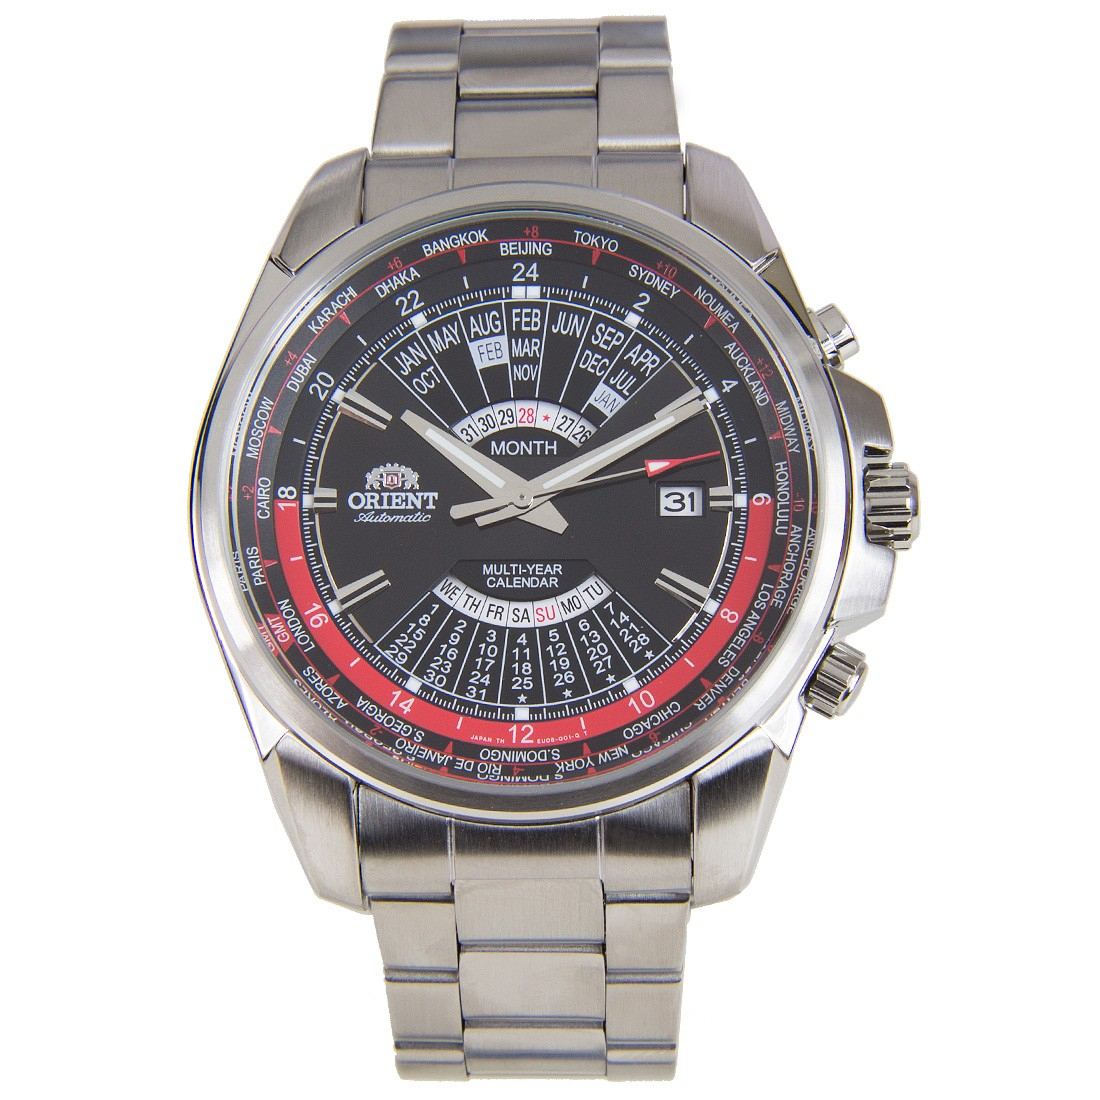 Orient Automatic World Time Multi Year Calendar Watch Eu0B001B